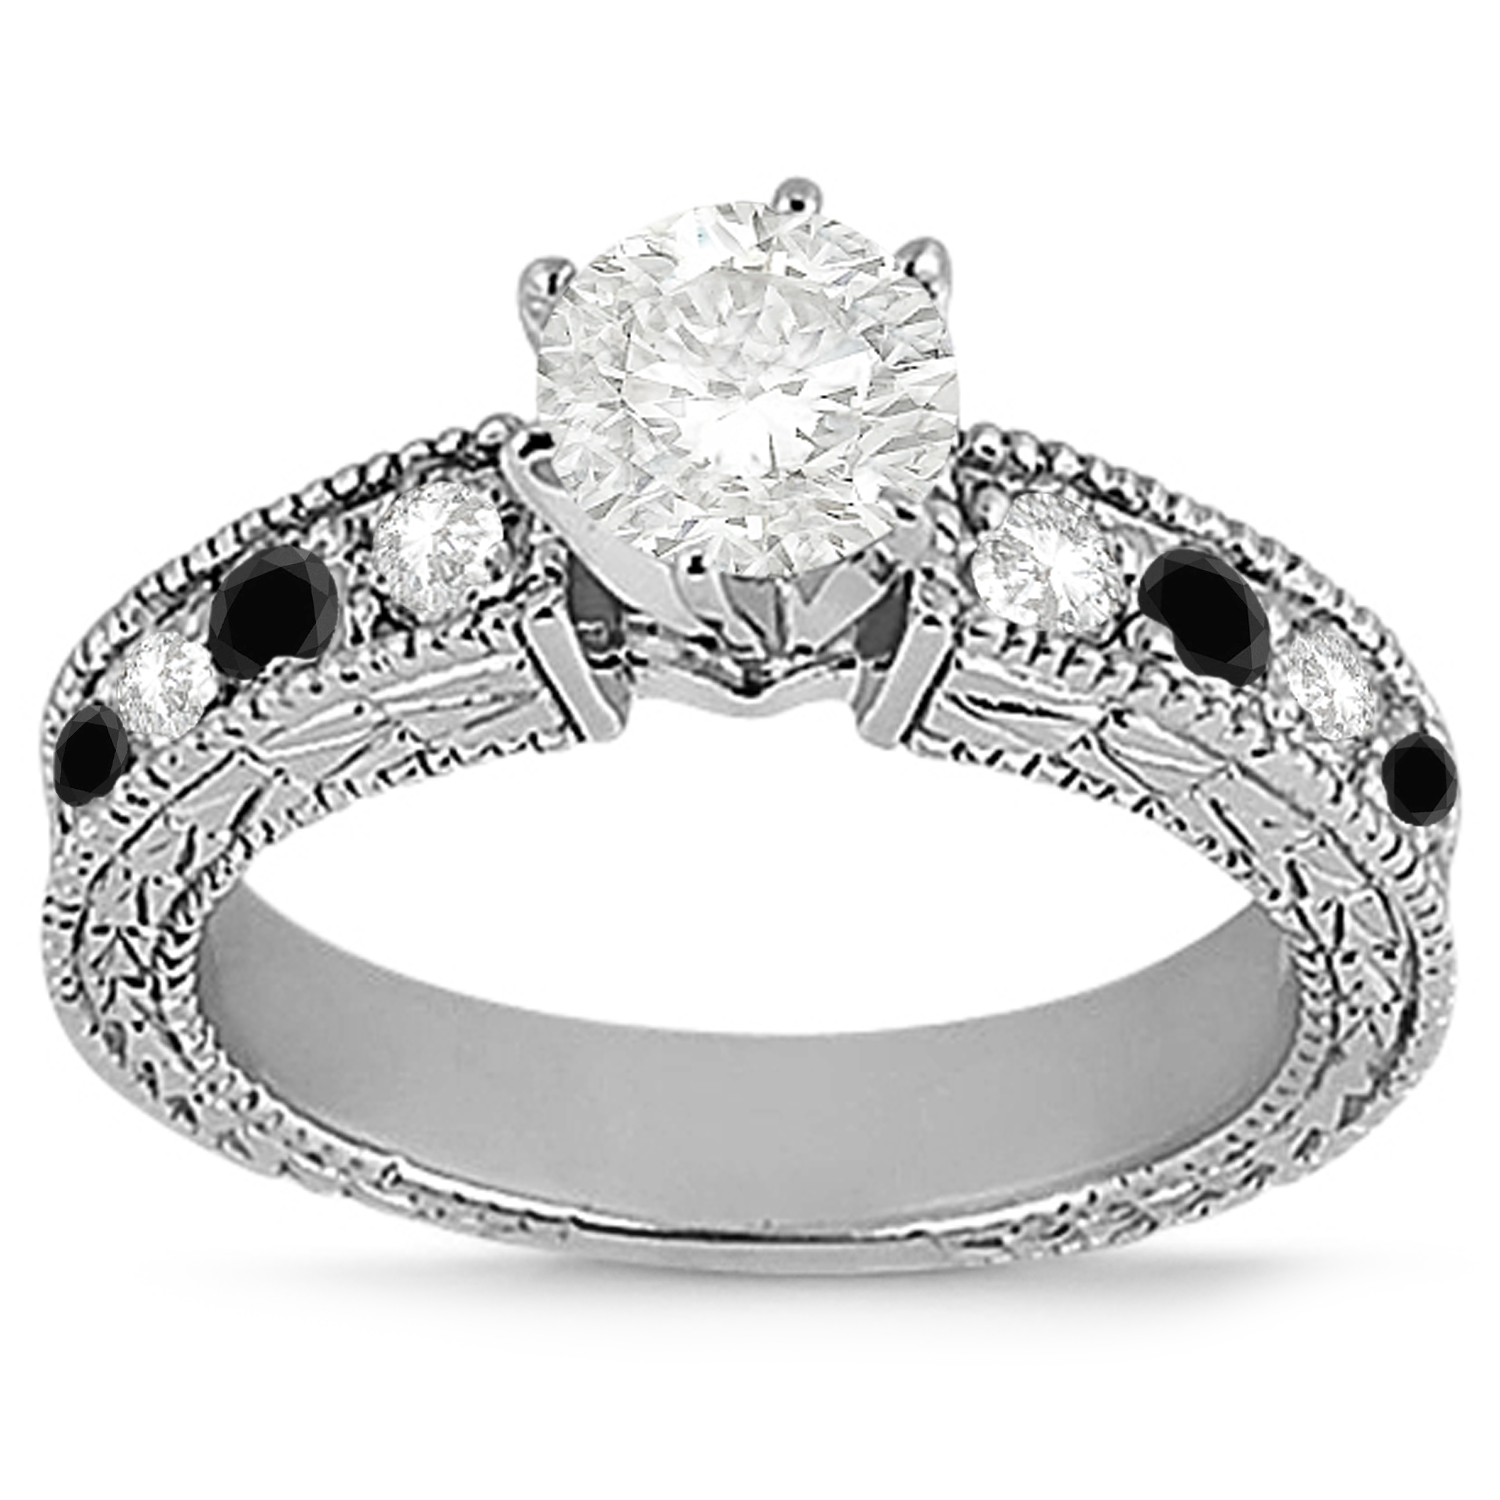 Antique White & Black Diamond Bridal Set 14k White Gold 1 80ct